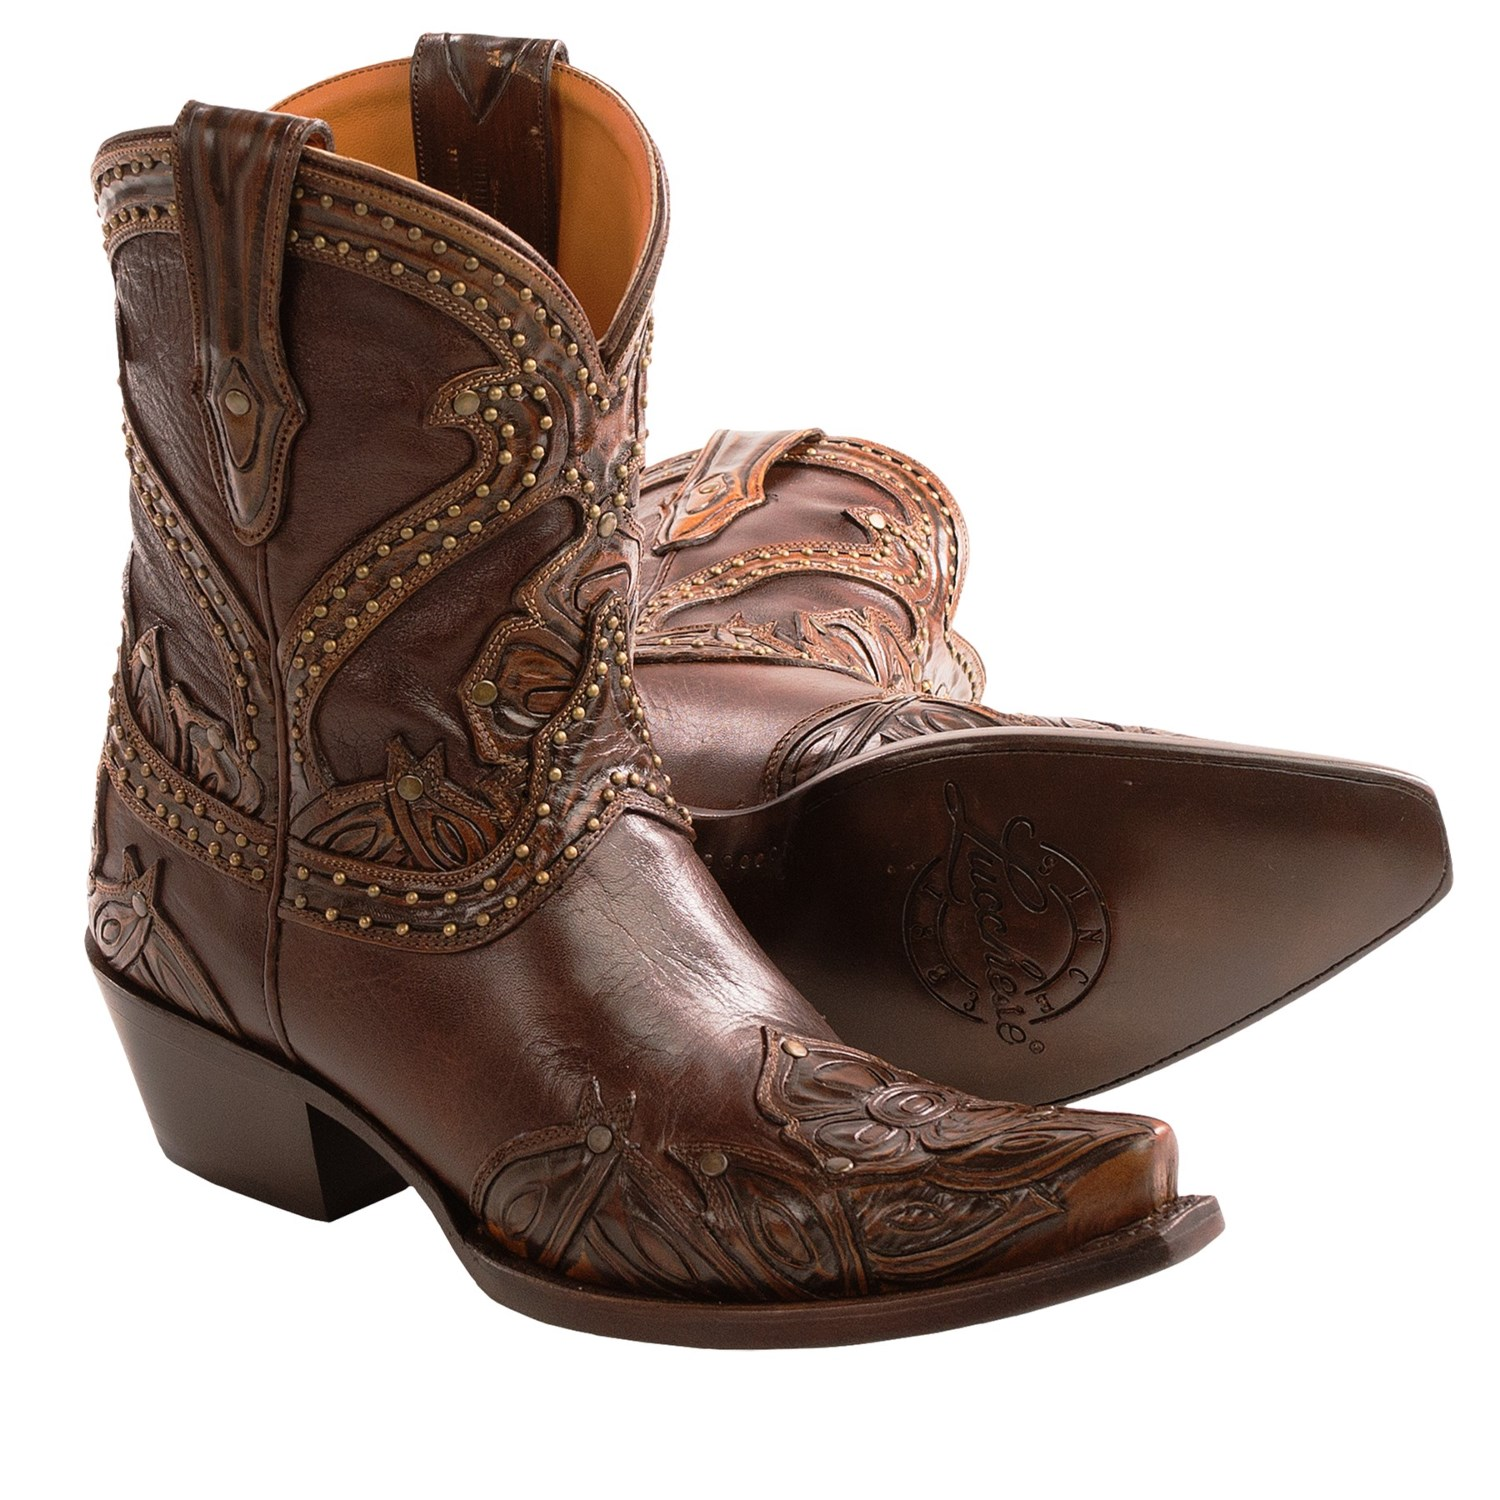 lucchese tooled petal cowboy boots leather ankle height